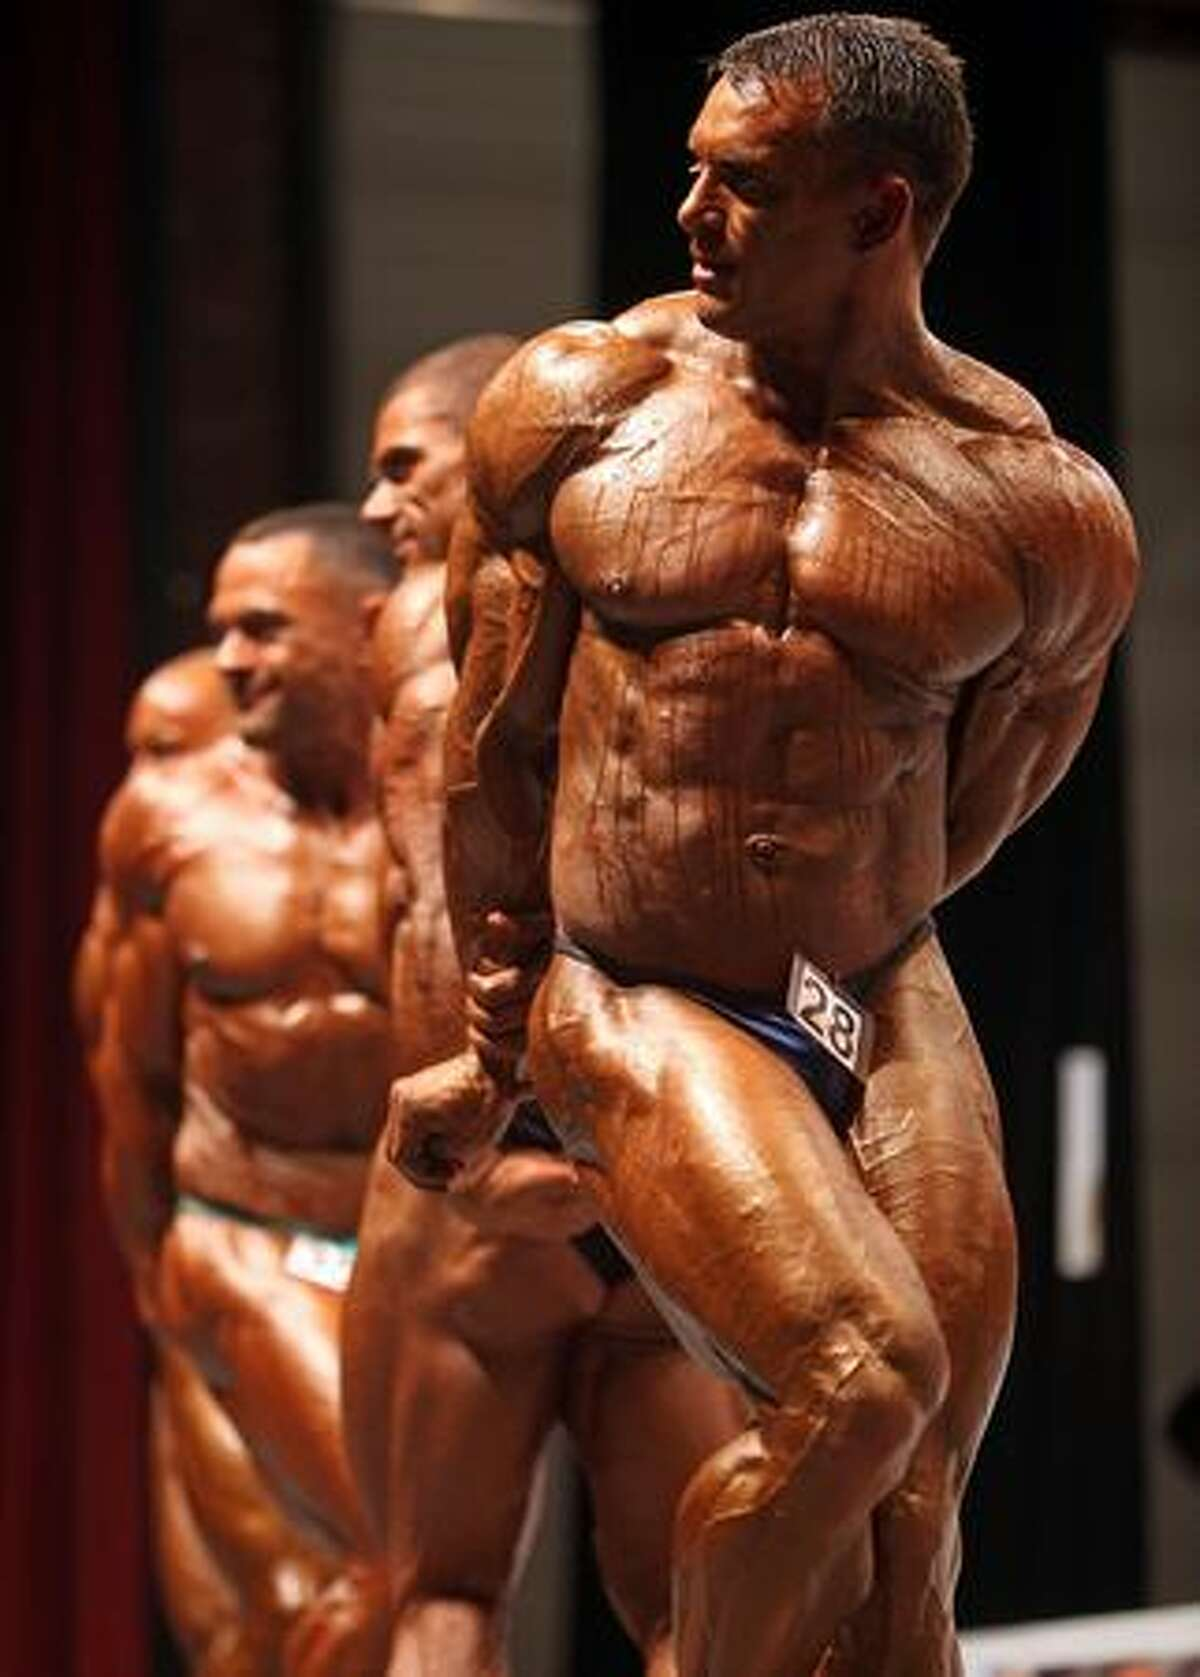 Bodybuilders pose for judges in the preliminary rounds of The Mister Universe competition at The Southport Theatre Saturday in Southport, England. Bodybuilders from all over the world are competiting for the National Amateur Body Building Association titles with their sculptured and honed bodies.